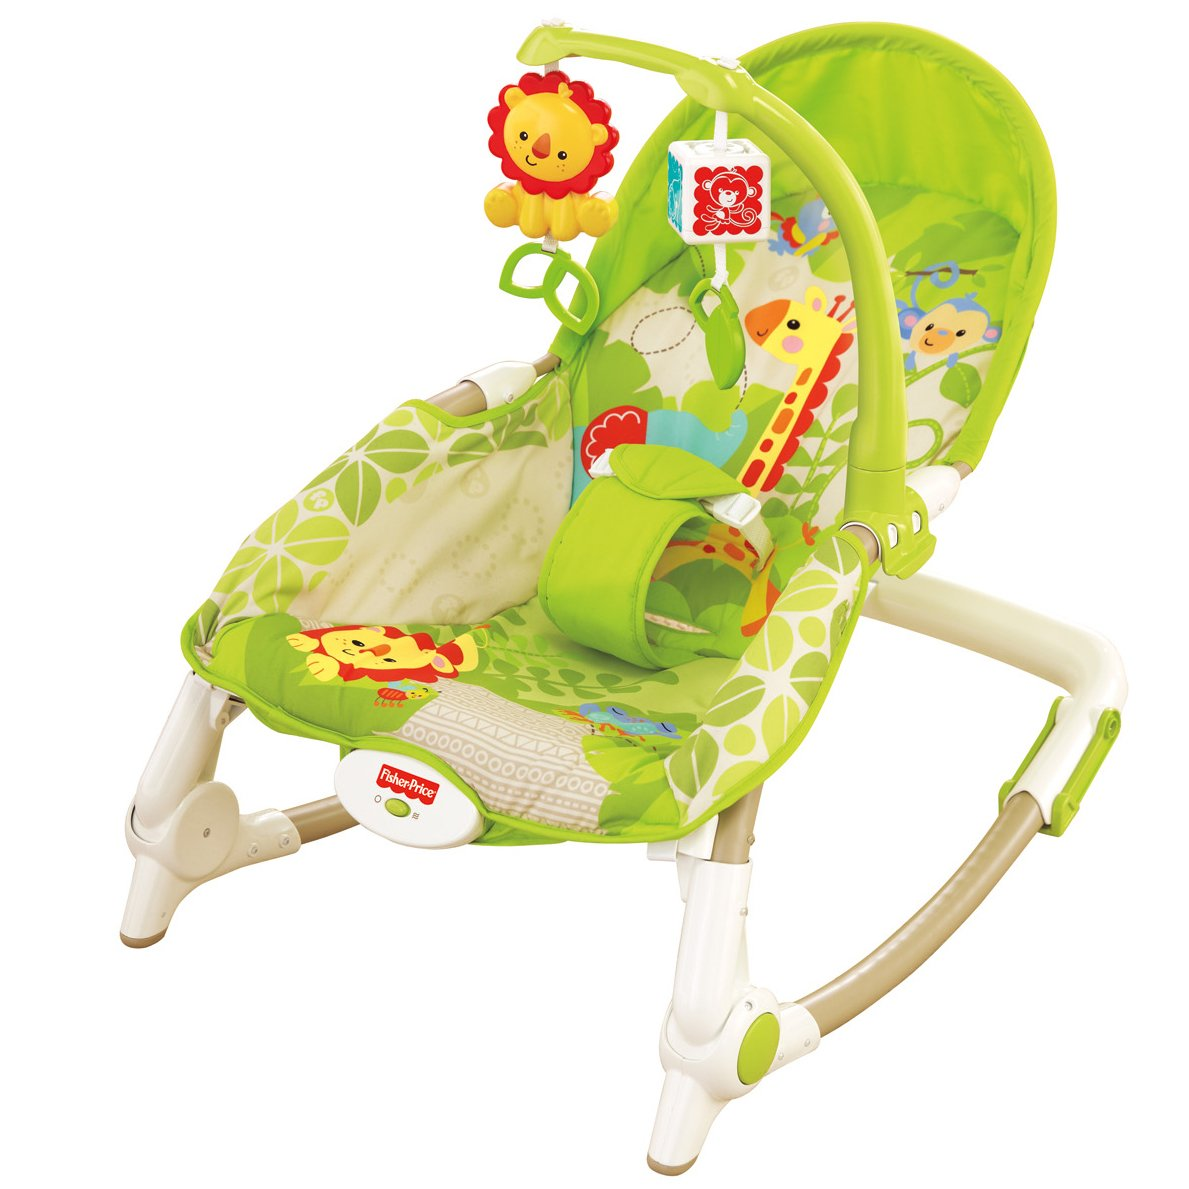 Toddler Rocker Chair Baby Toddler Rocker Portable New Born Infant Bouncer